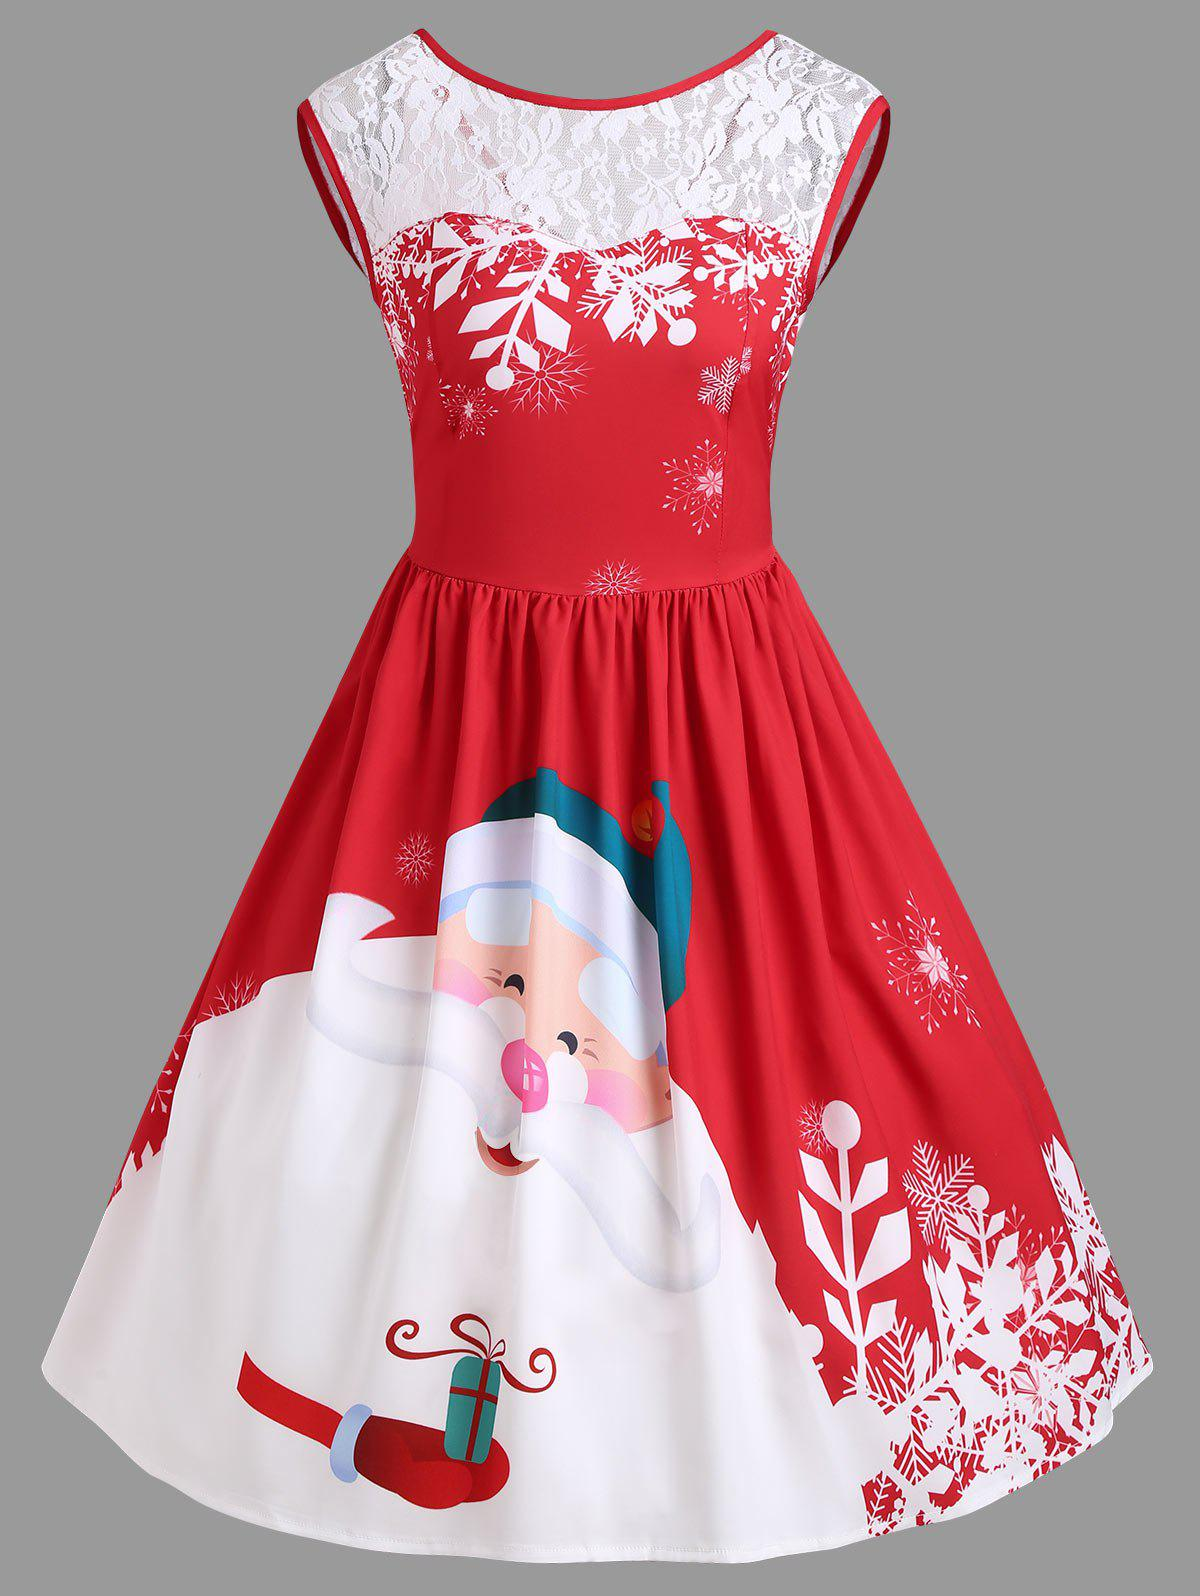 Shop Christmas Santa Claus Print Lace Insert Party Dress